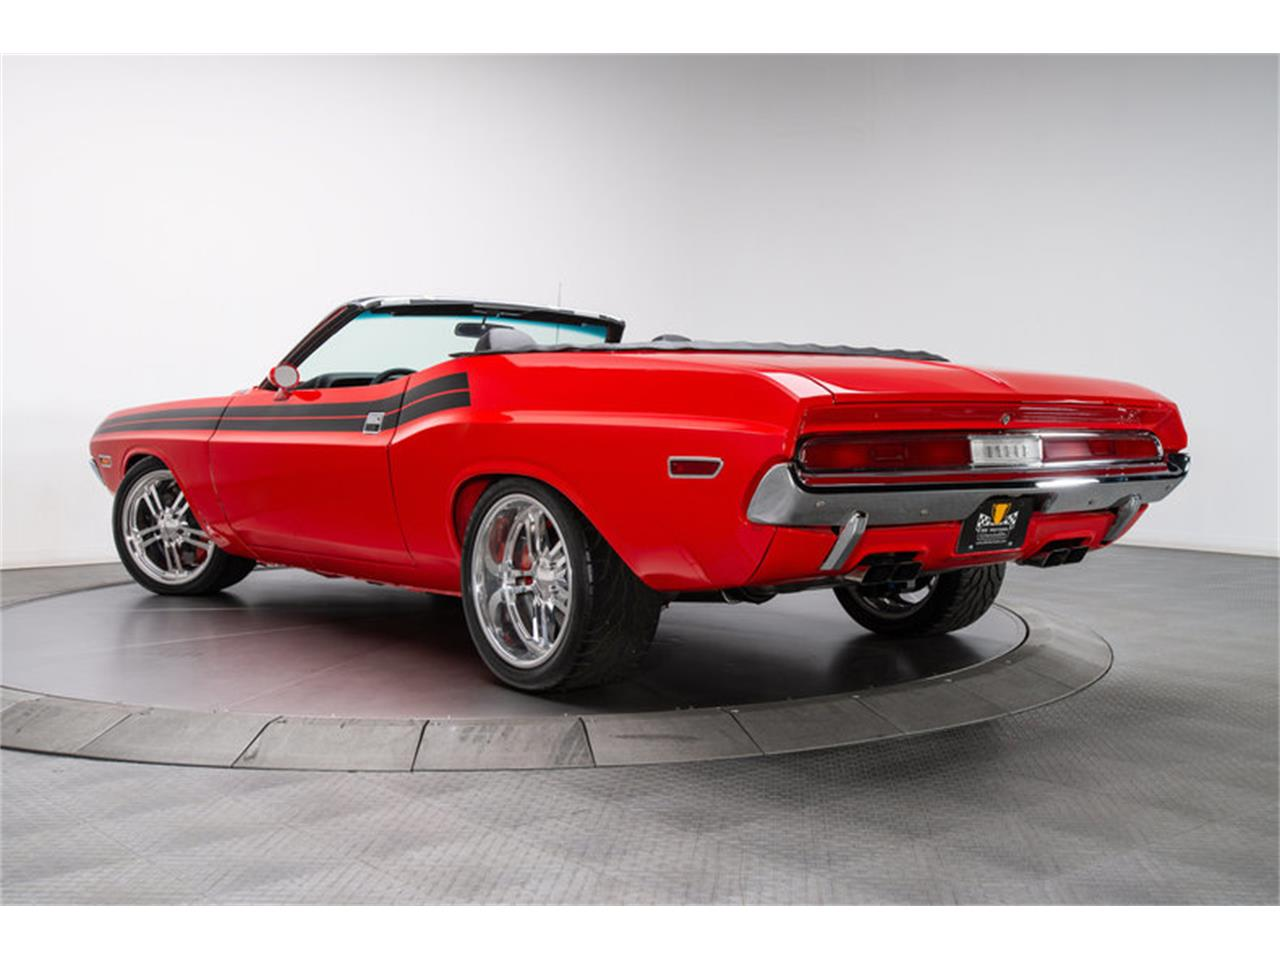 Large Picture of '70 Dodge Challenger R/T located in North Carolina - $89,900.00 - F9K4